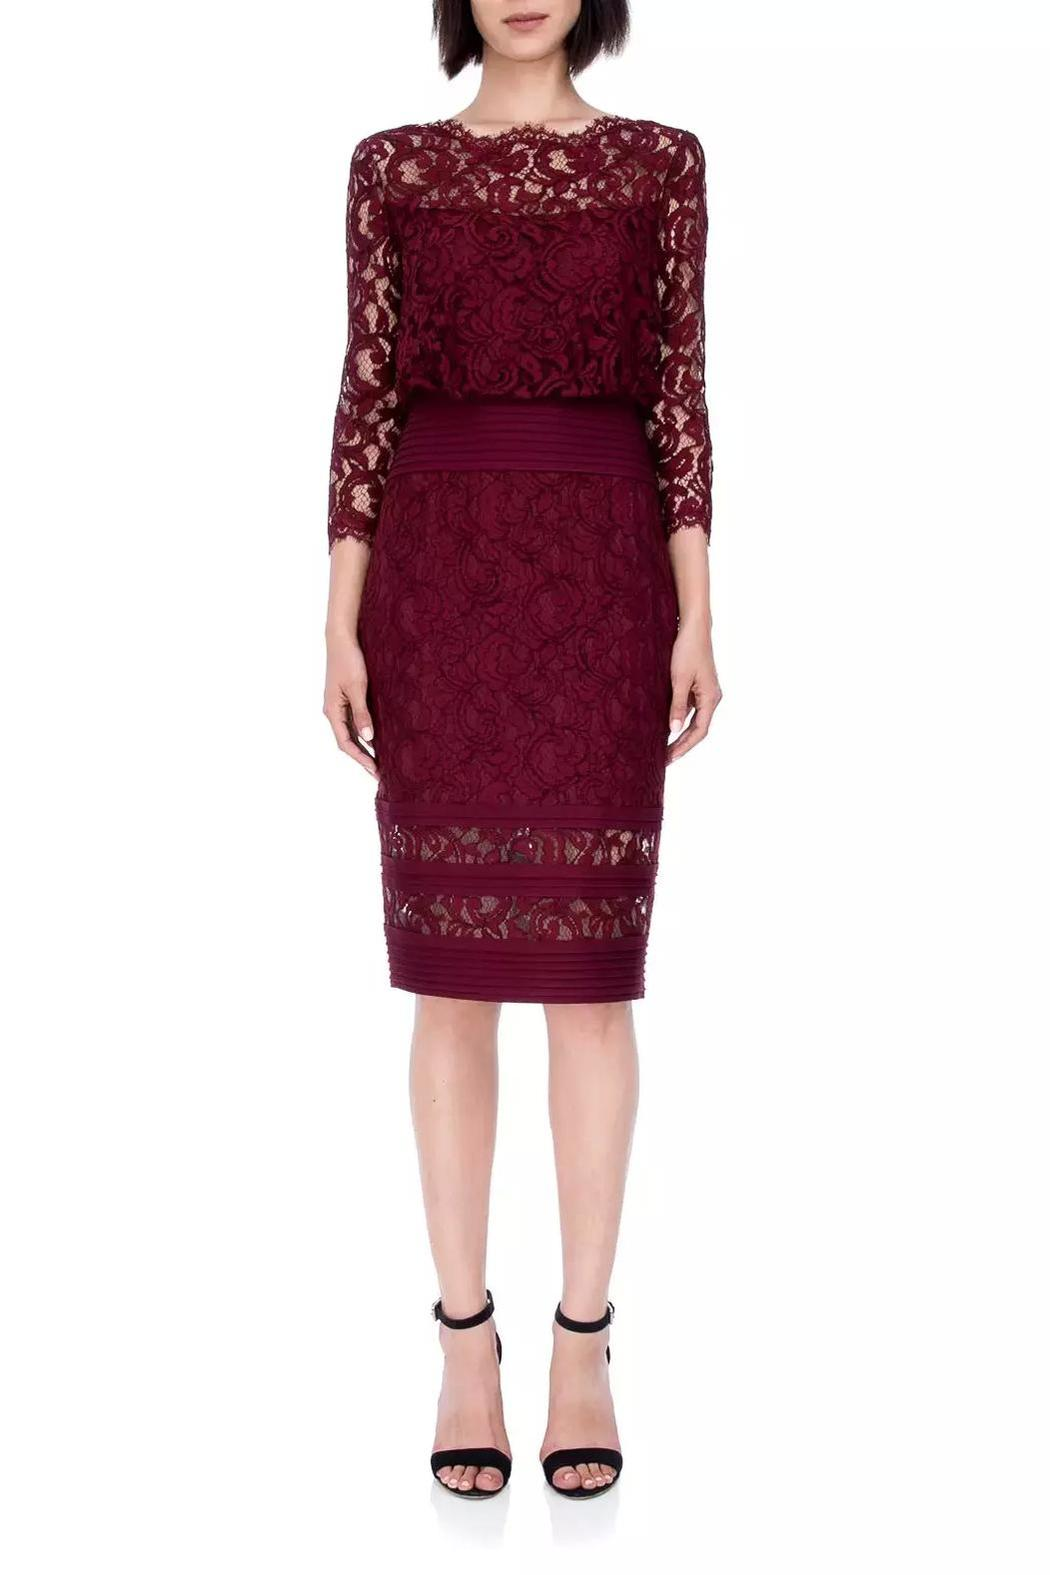 Tadashi Shoji Embroidered Lace Dress from New Jersey by District 5 ...